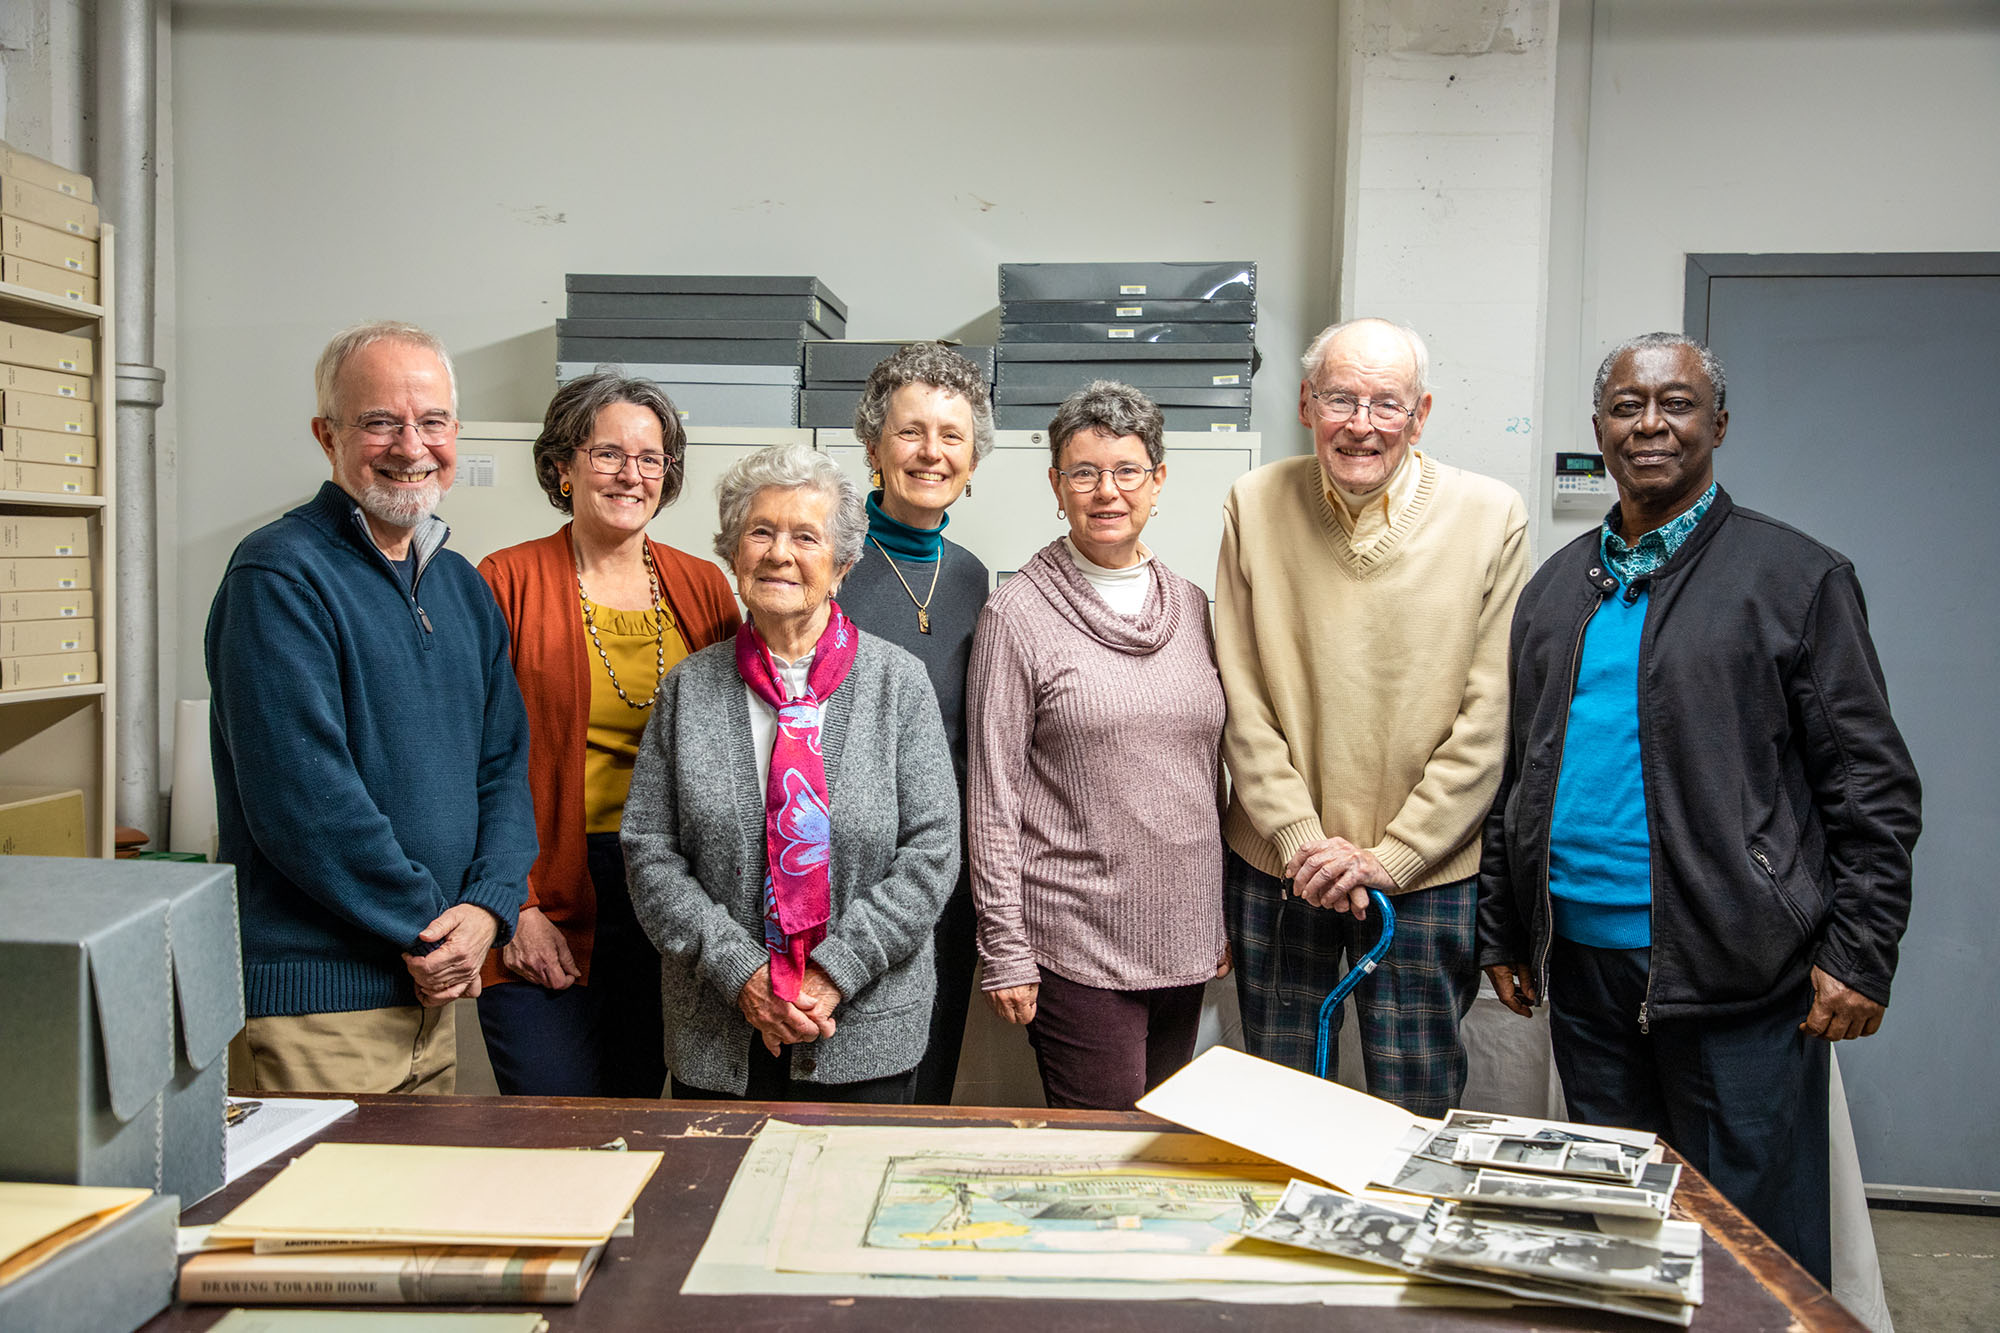 Seven of Royal Barry Wills's family members visiting the Library & Archives pose in front of a table with the architect's sketches.